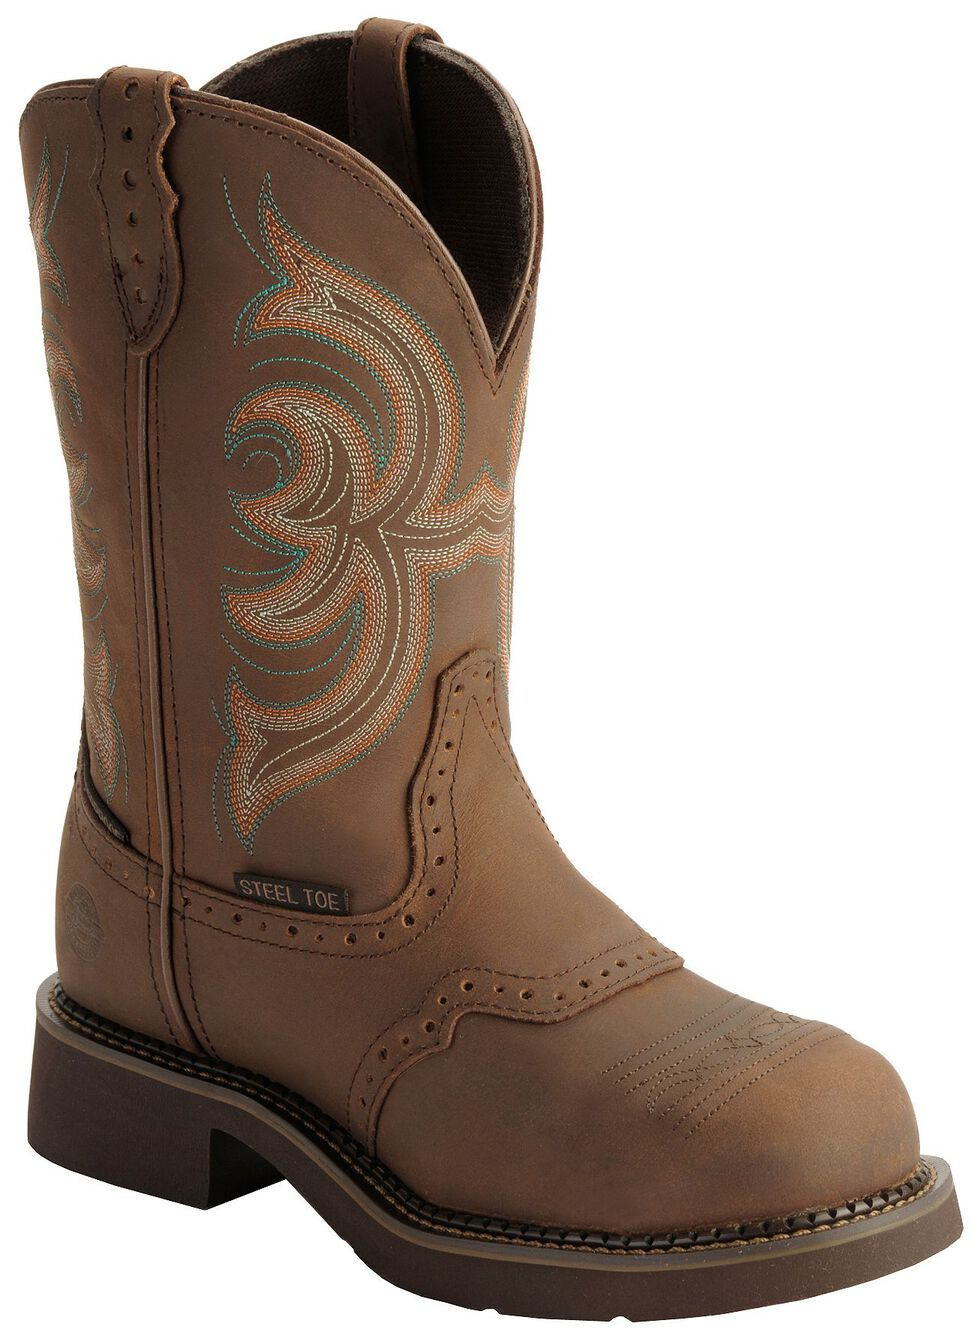 "Justin Gypsy Women's Wanette 11"" Brown EH Work Boots - Steel Toe, Aged Bark, hi-res"